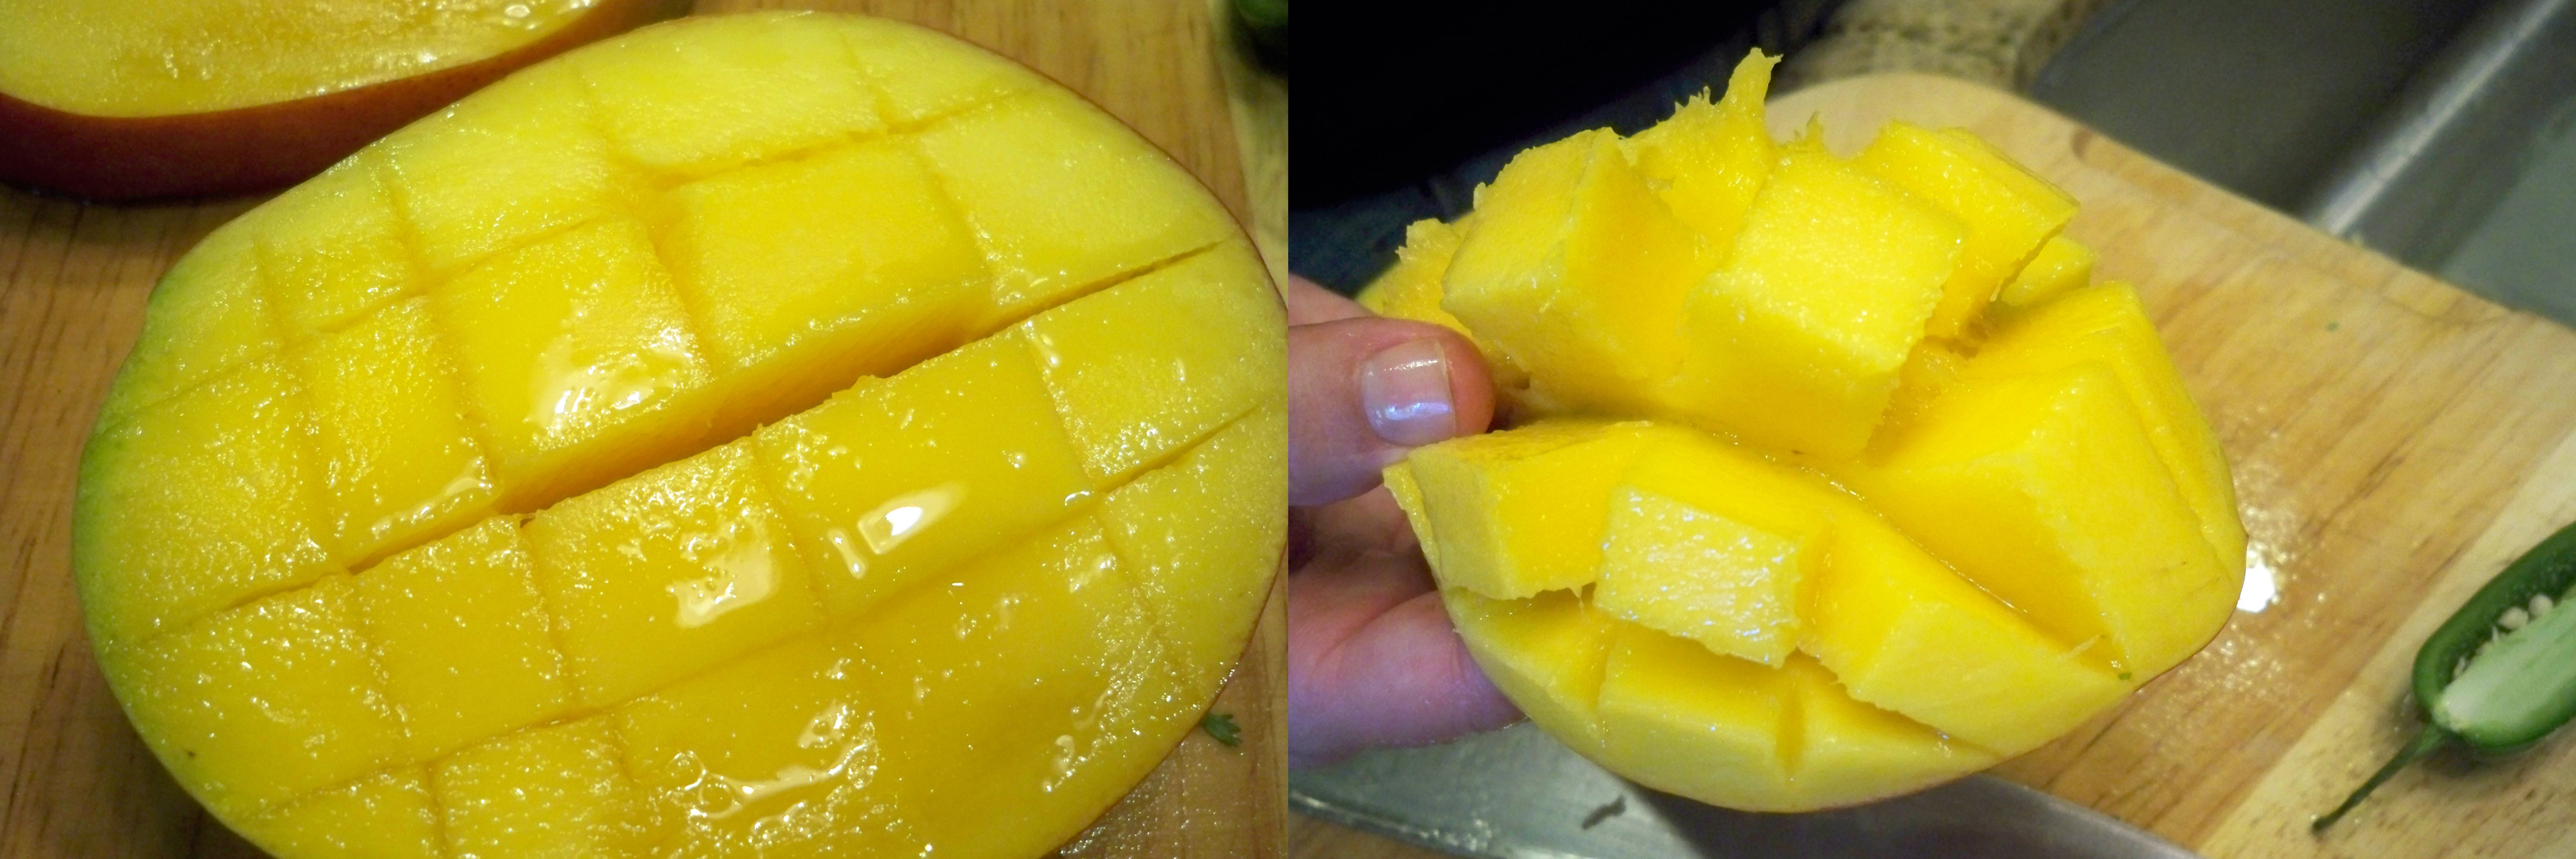 If You Don't Like Mango Or Can't Find Any Ripe Ones You